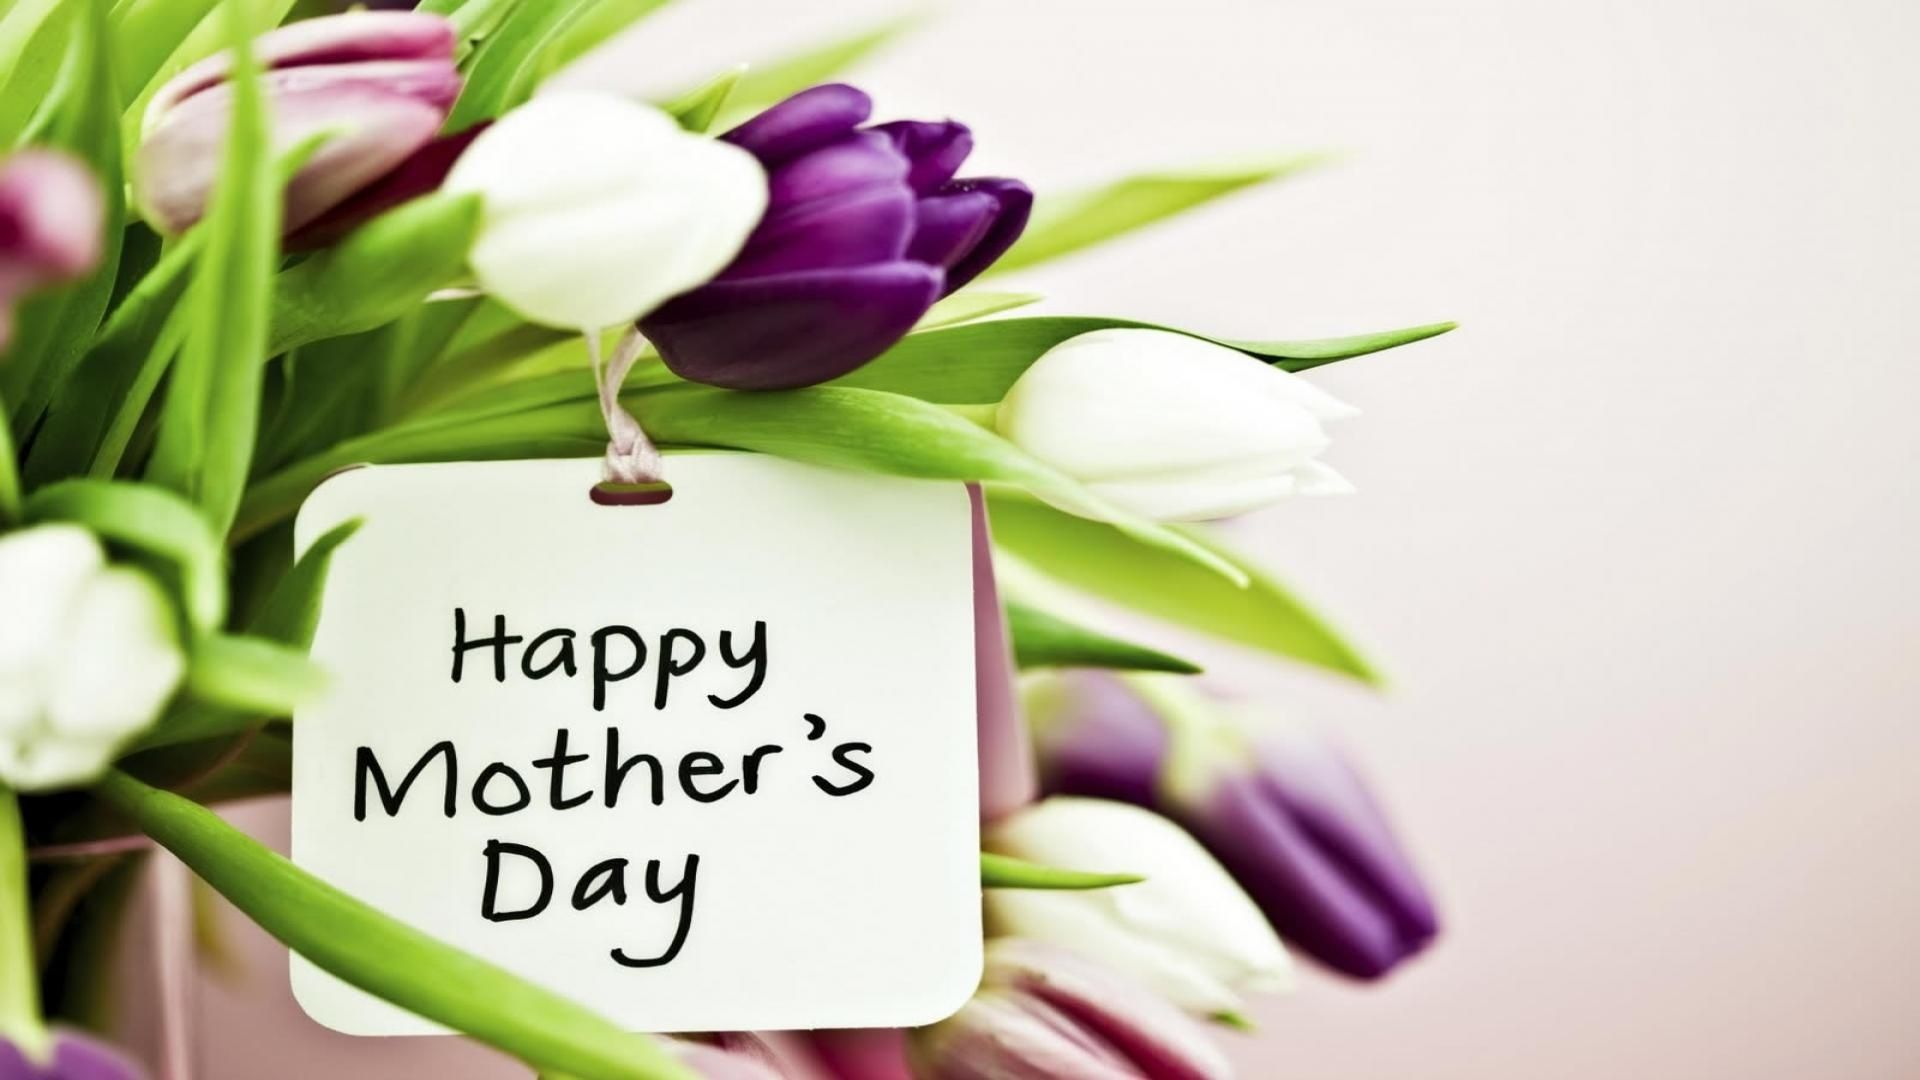 Happy Mothers Day Wallpaper Free Posted By Zoey Anderson